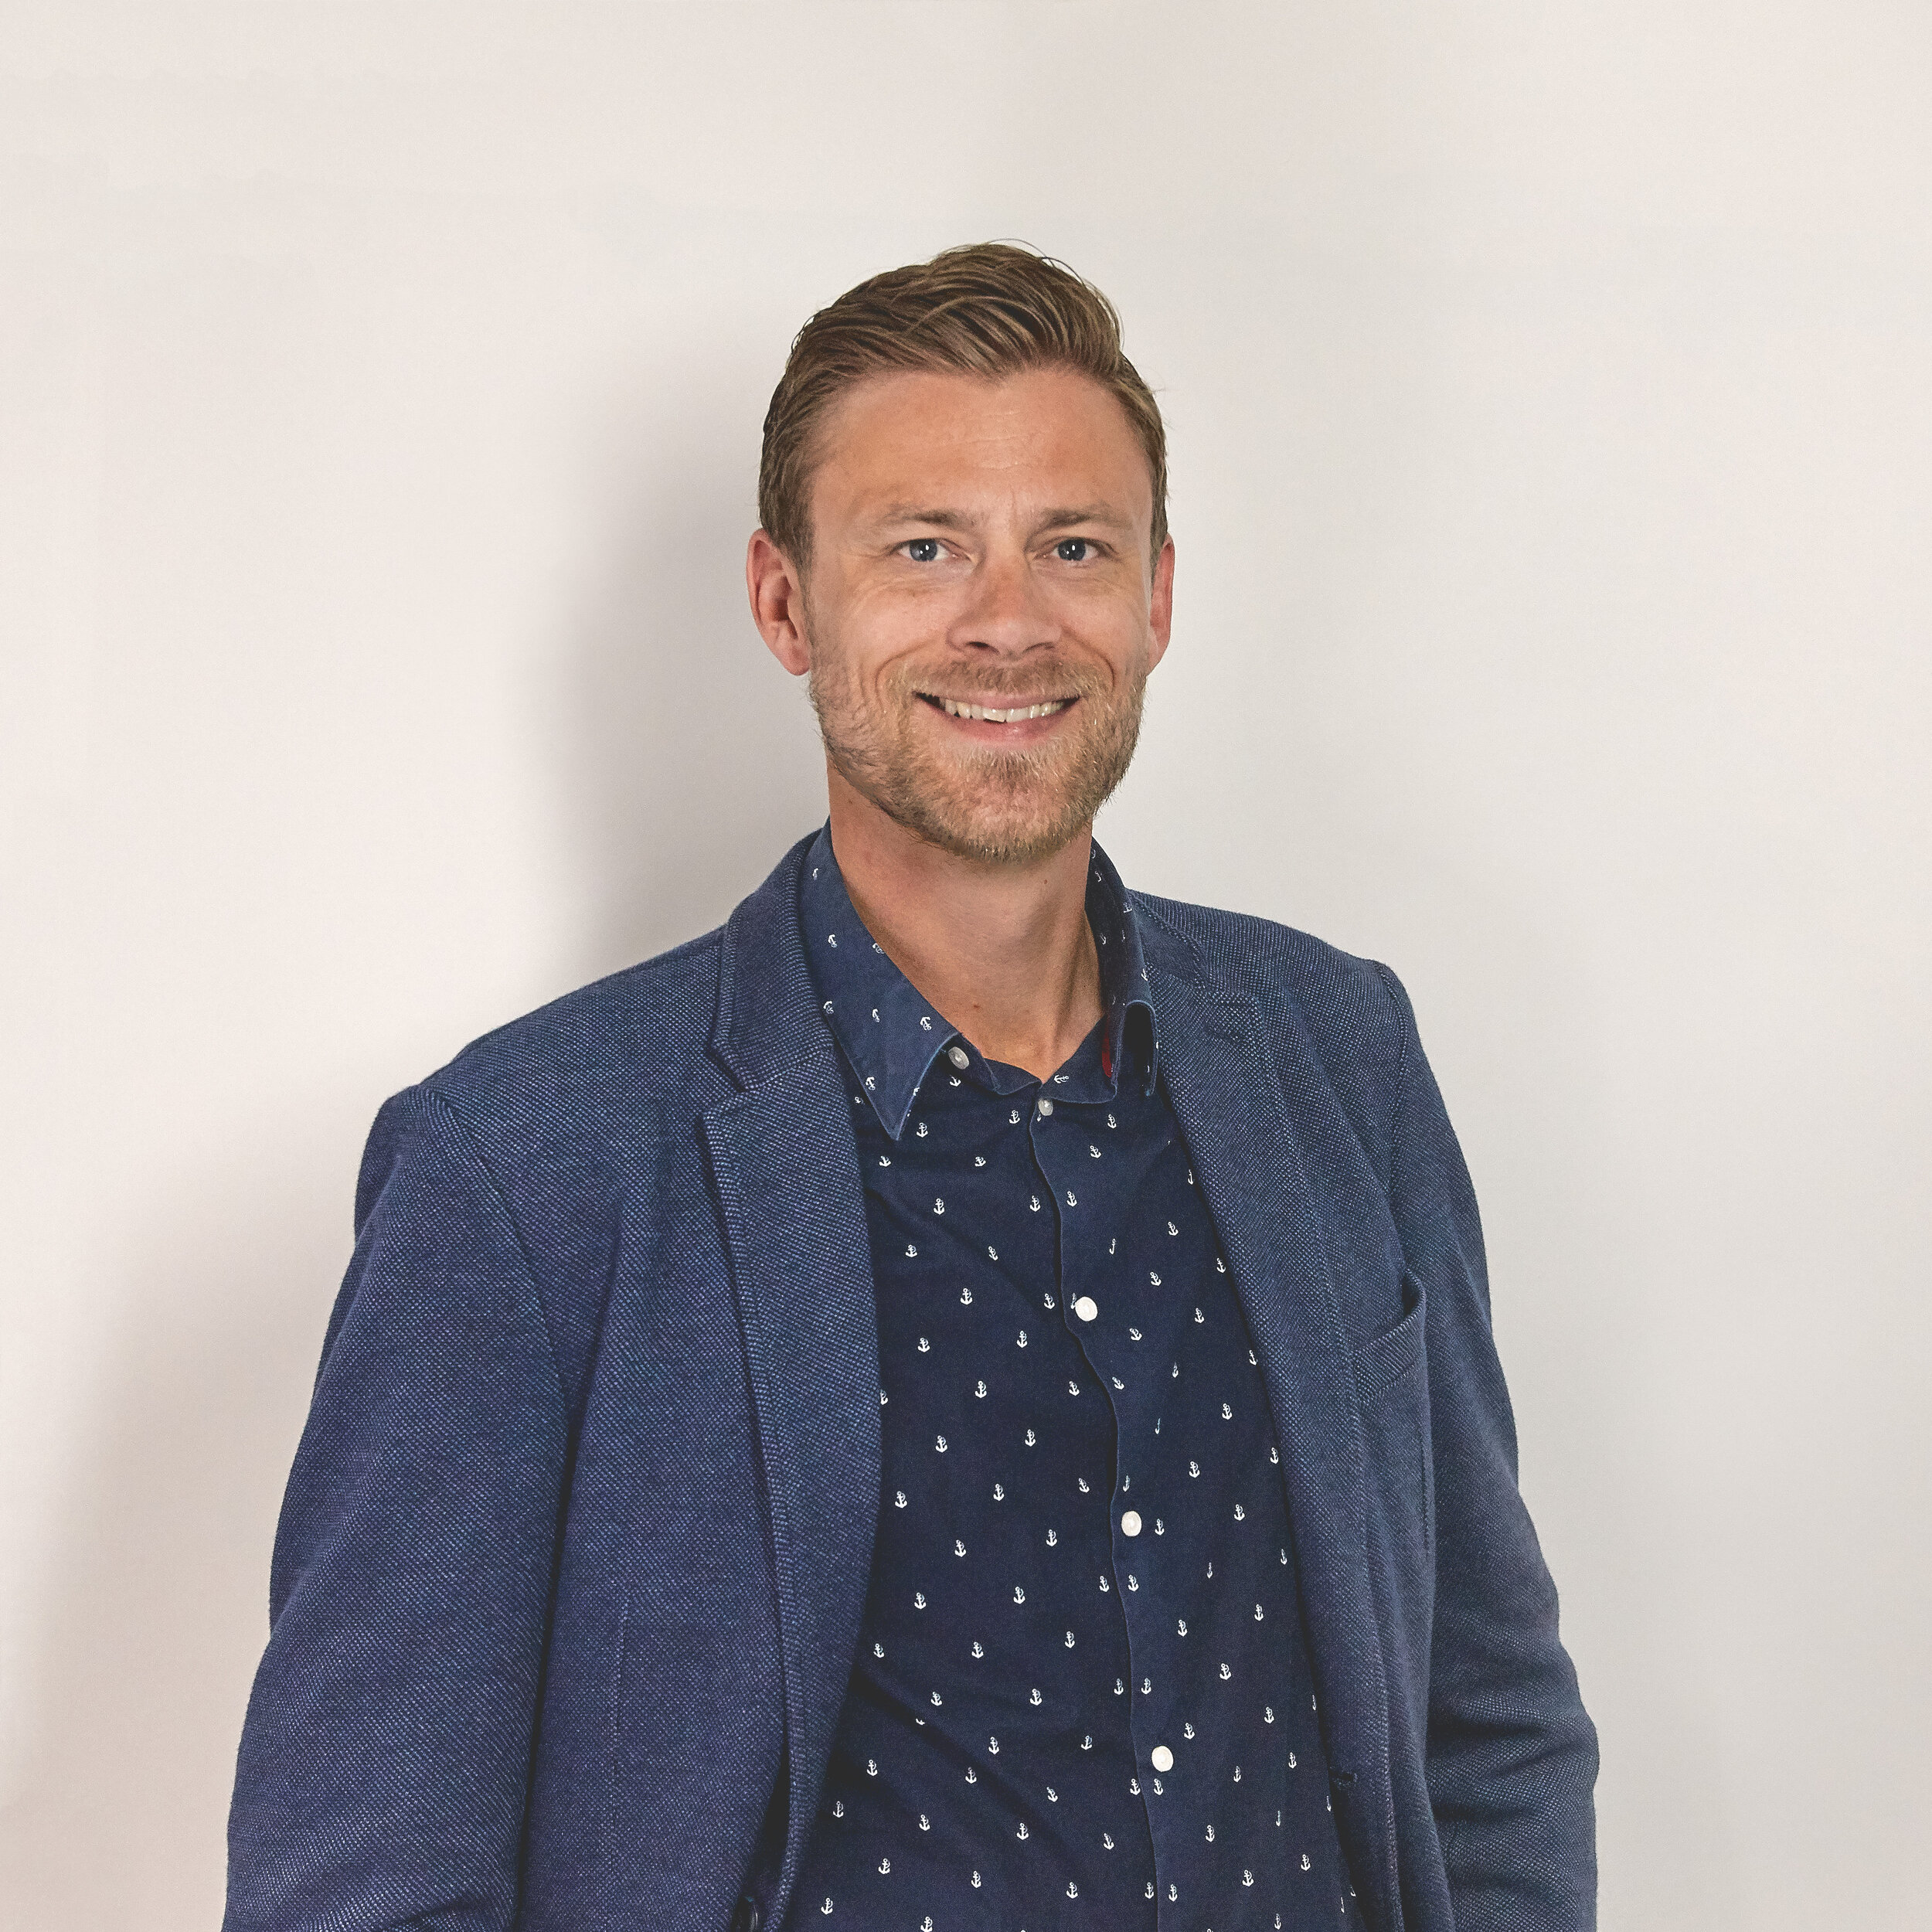 Curious to know more about how we might help you? Contact Managing Director Thomas Gamst at tg@everland.dk -